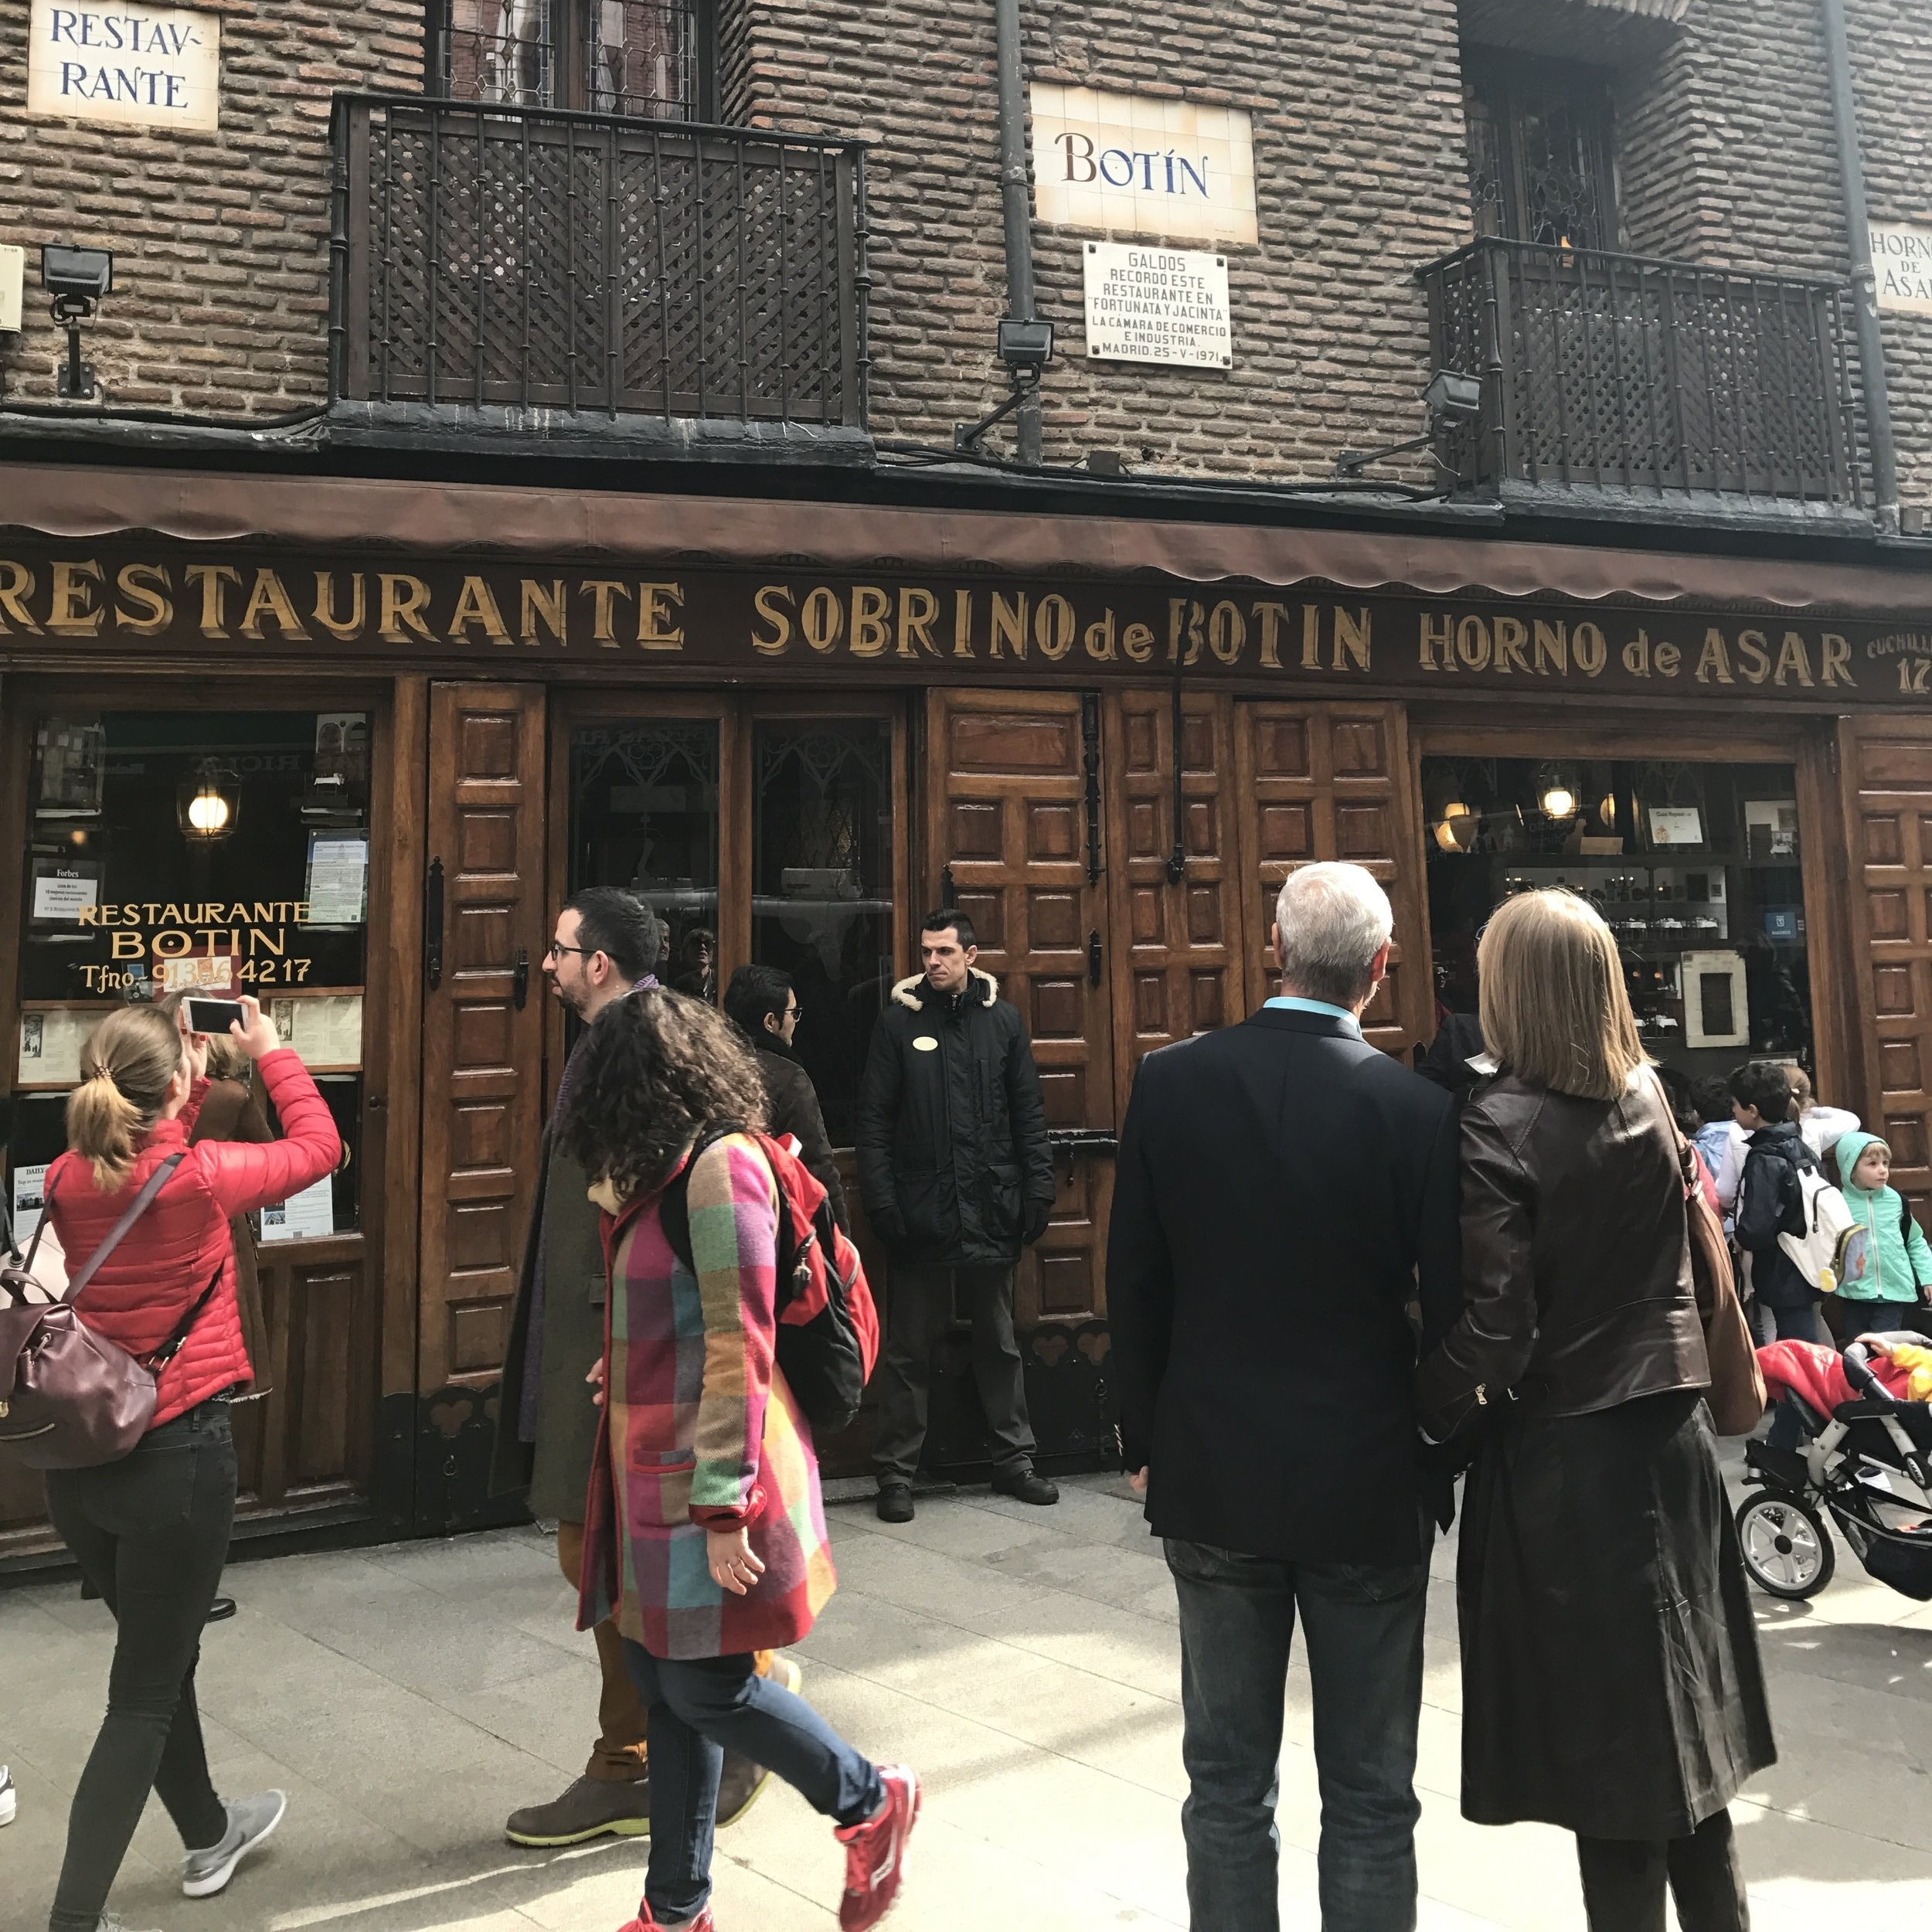 The oldest operating restaurant in the world